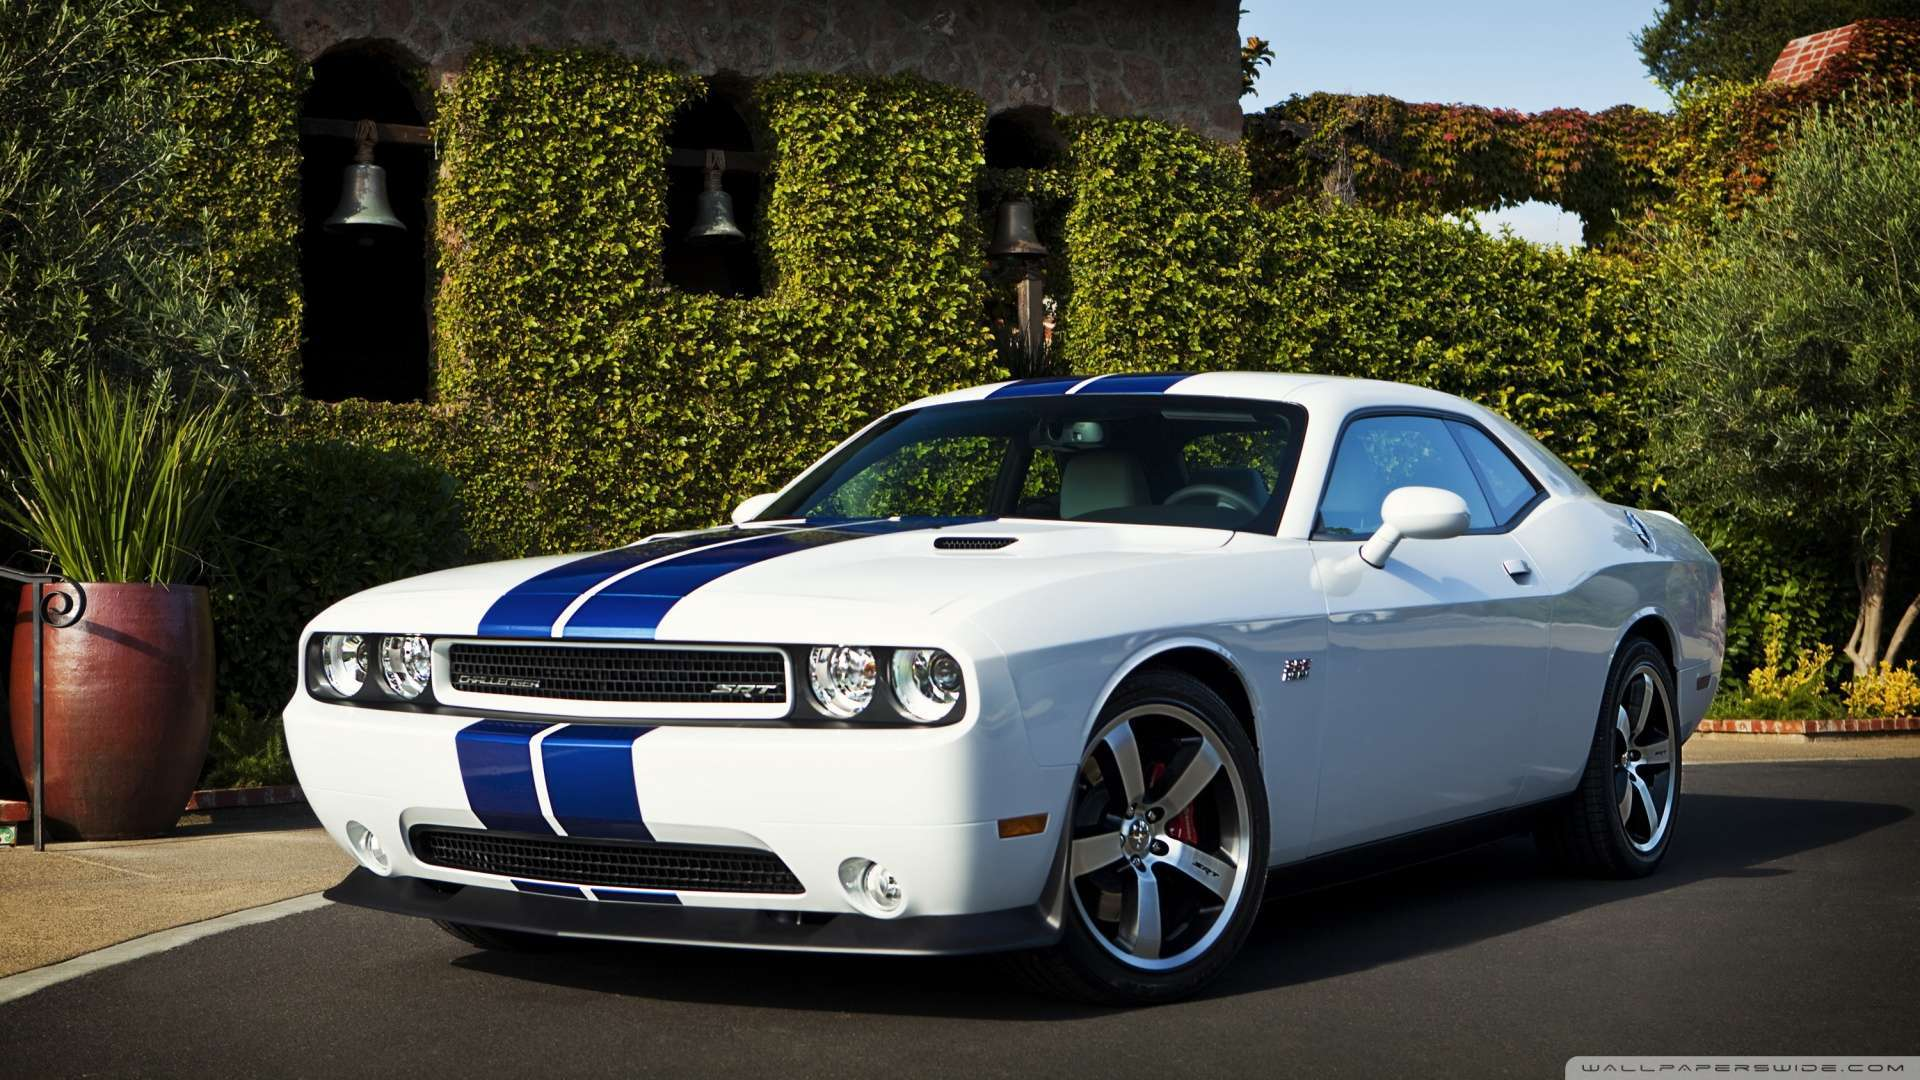 Mustang Decals And Stripes >> 2019 Dodge Challenger RT Redline | Car Photos Catalog 2018